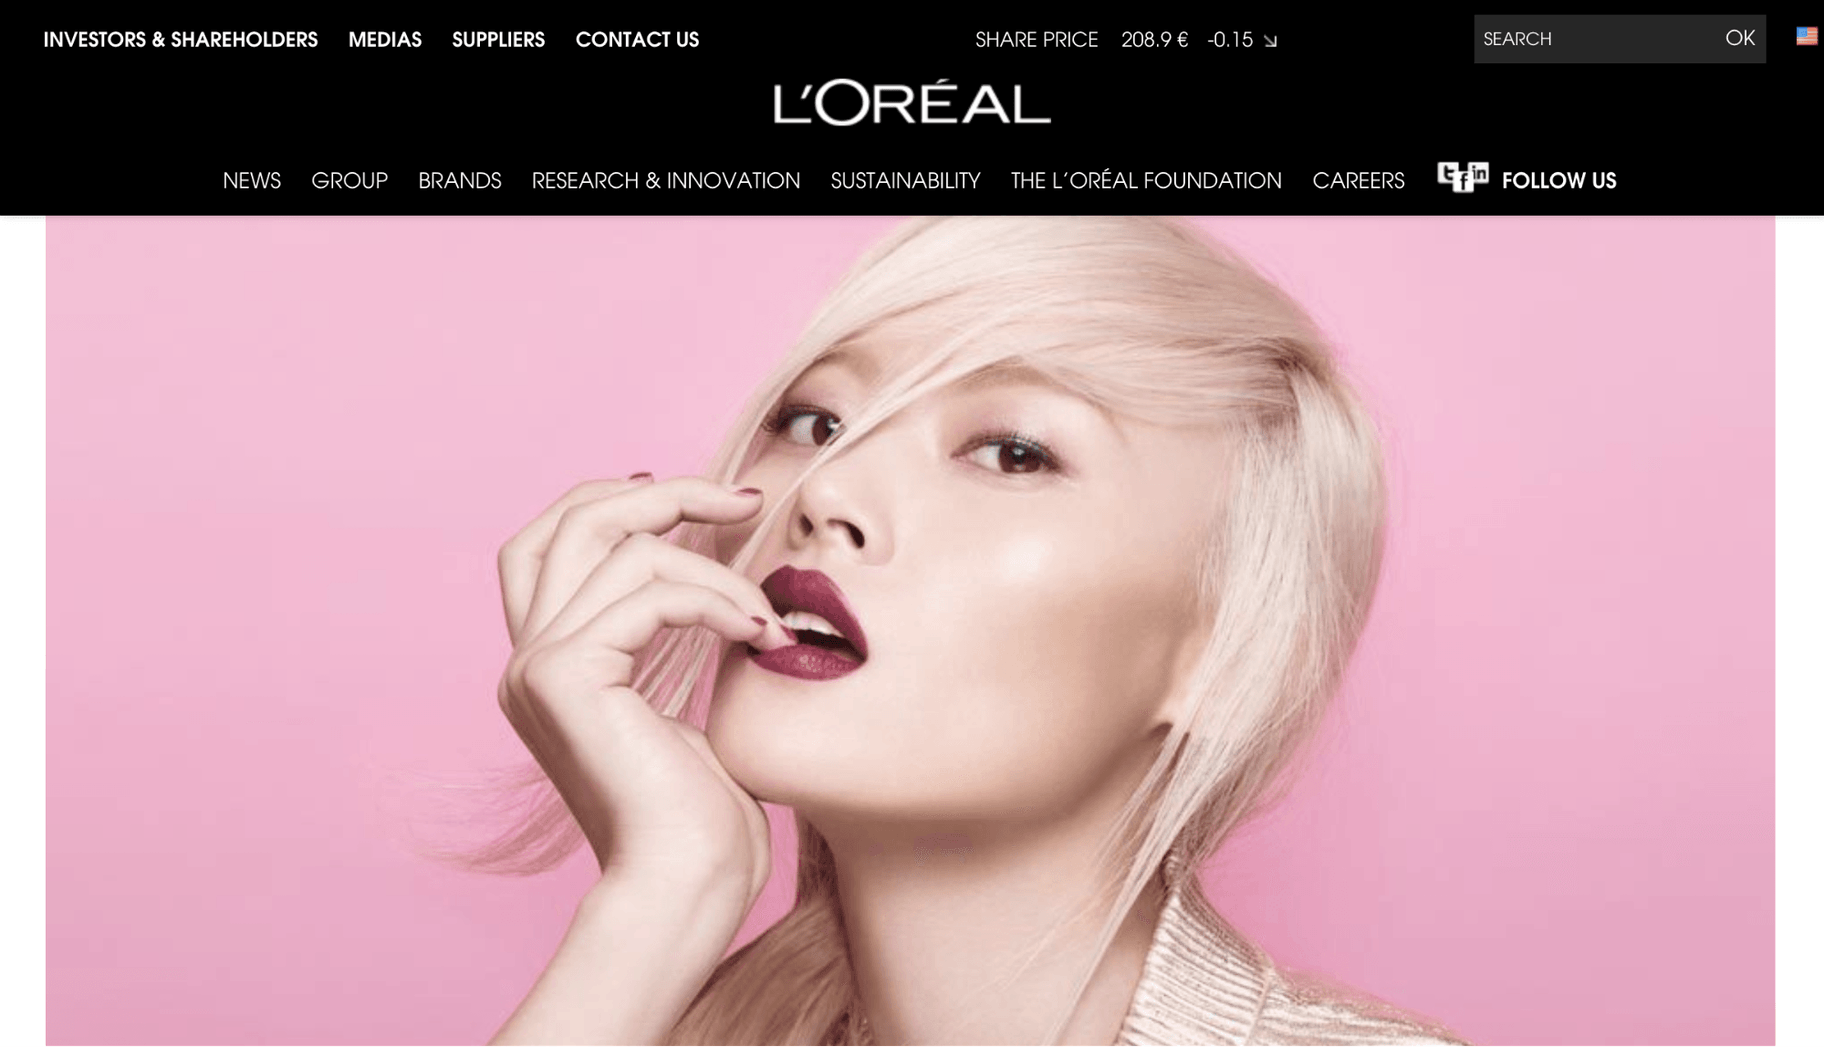 Loreal Vision Statement